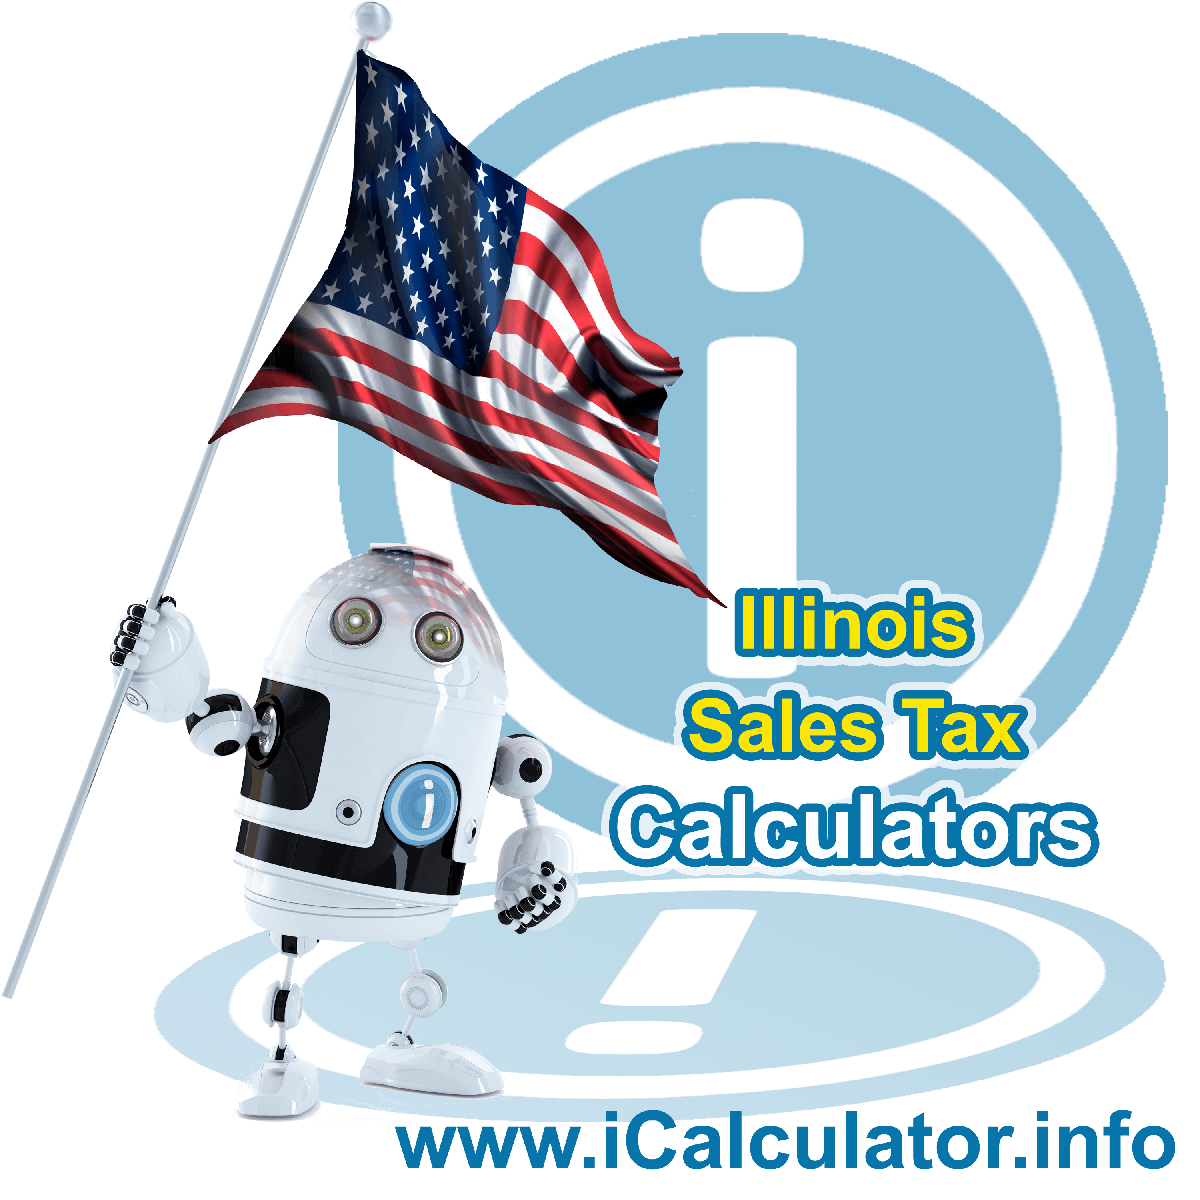 Kane Sales Rates: This image illustrates a calculator robot calculating Kane sales tax manually using the Kane Sales Tax Formula. You can use this information to calculate Kane Sales Tax manually or use the Kane Sales Tax Calculator to calculate sales tax online.